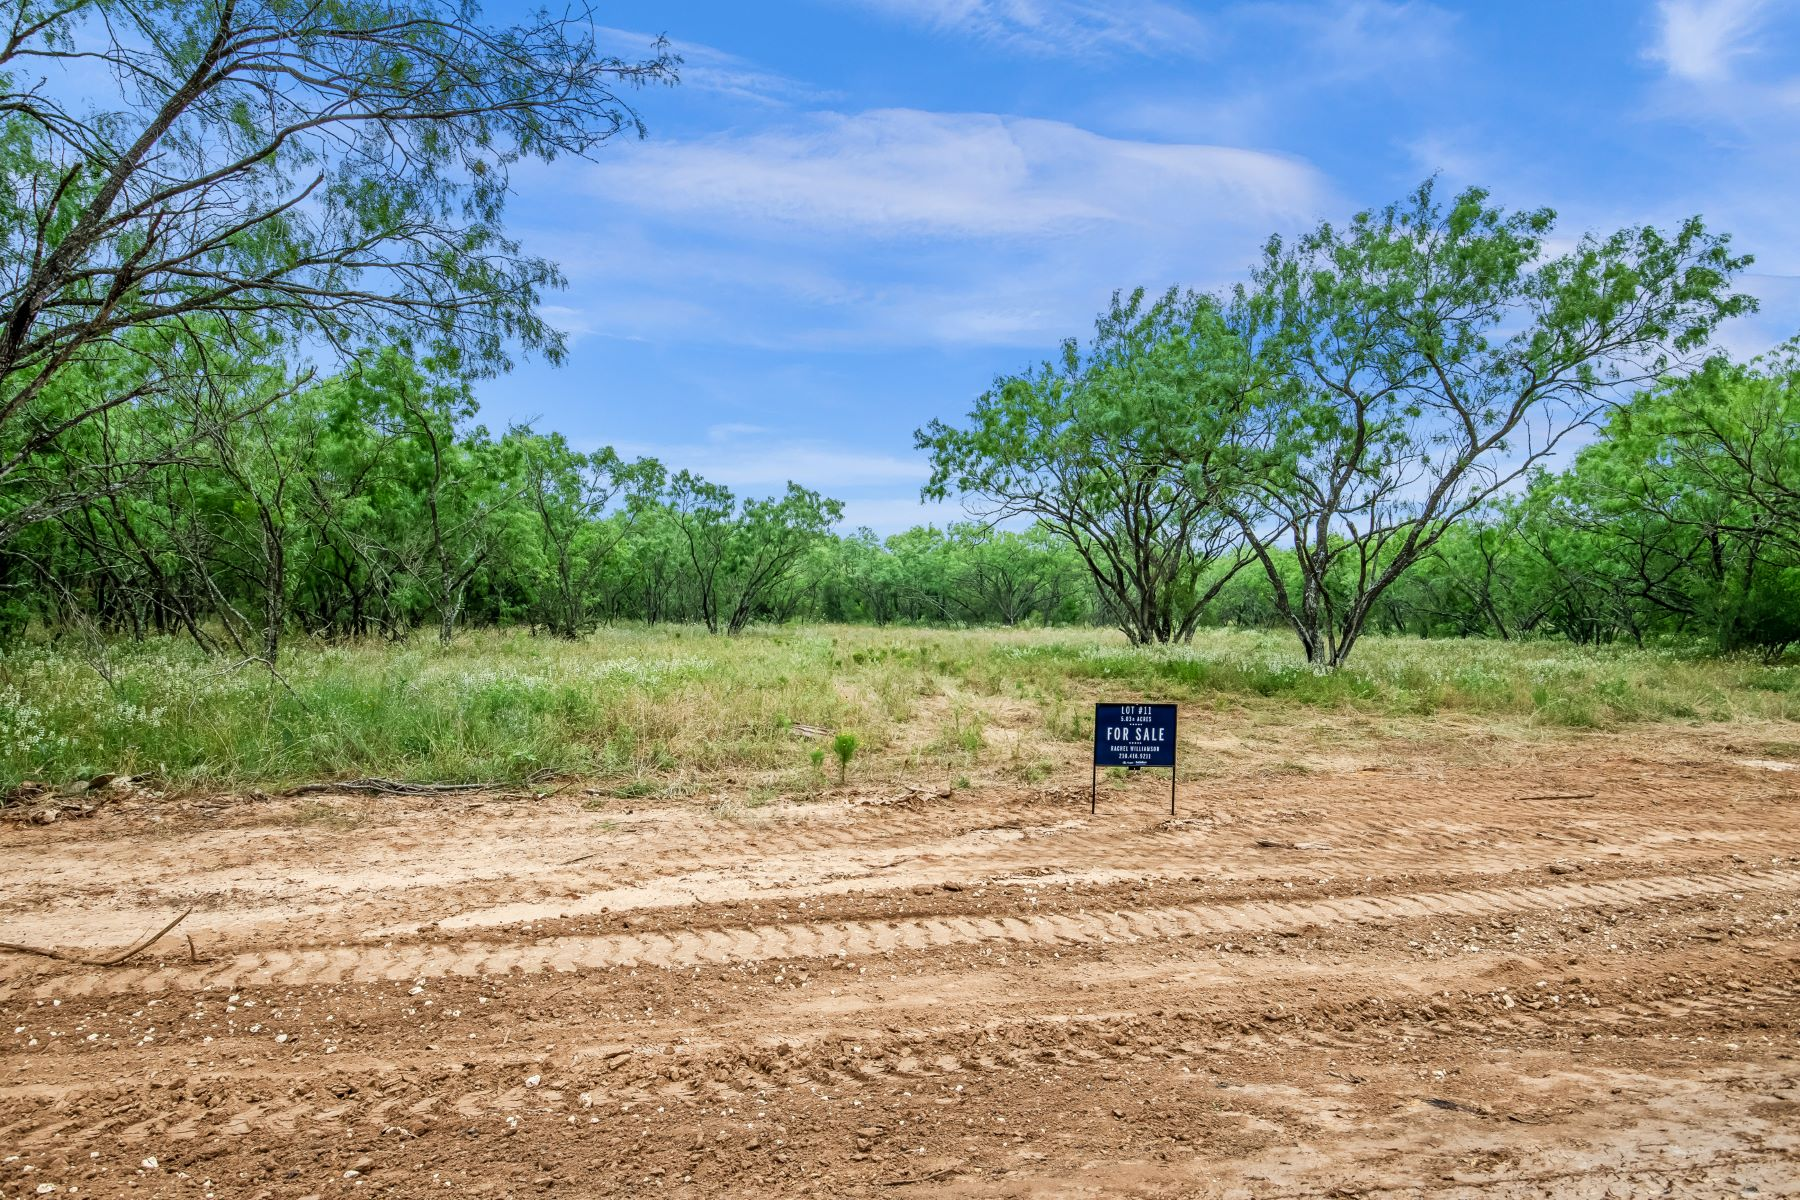 Land for Sale at New Development In A Supreme Location 14638 Silesia Drive Lot 11 St. Hedwig, Texas 78152 United States